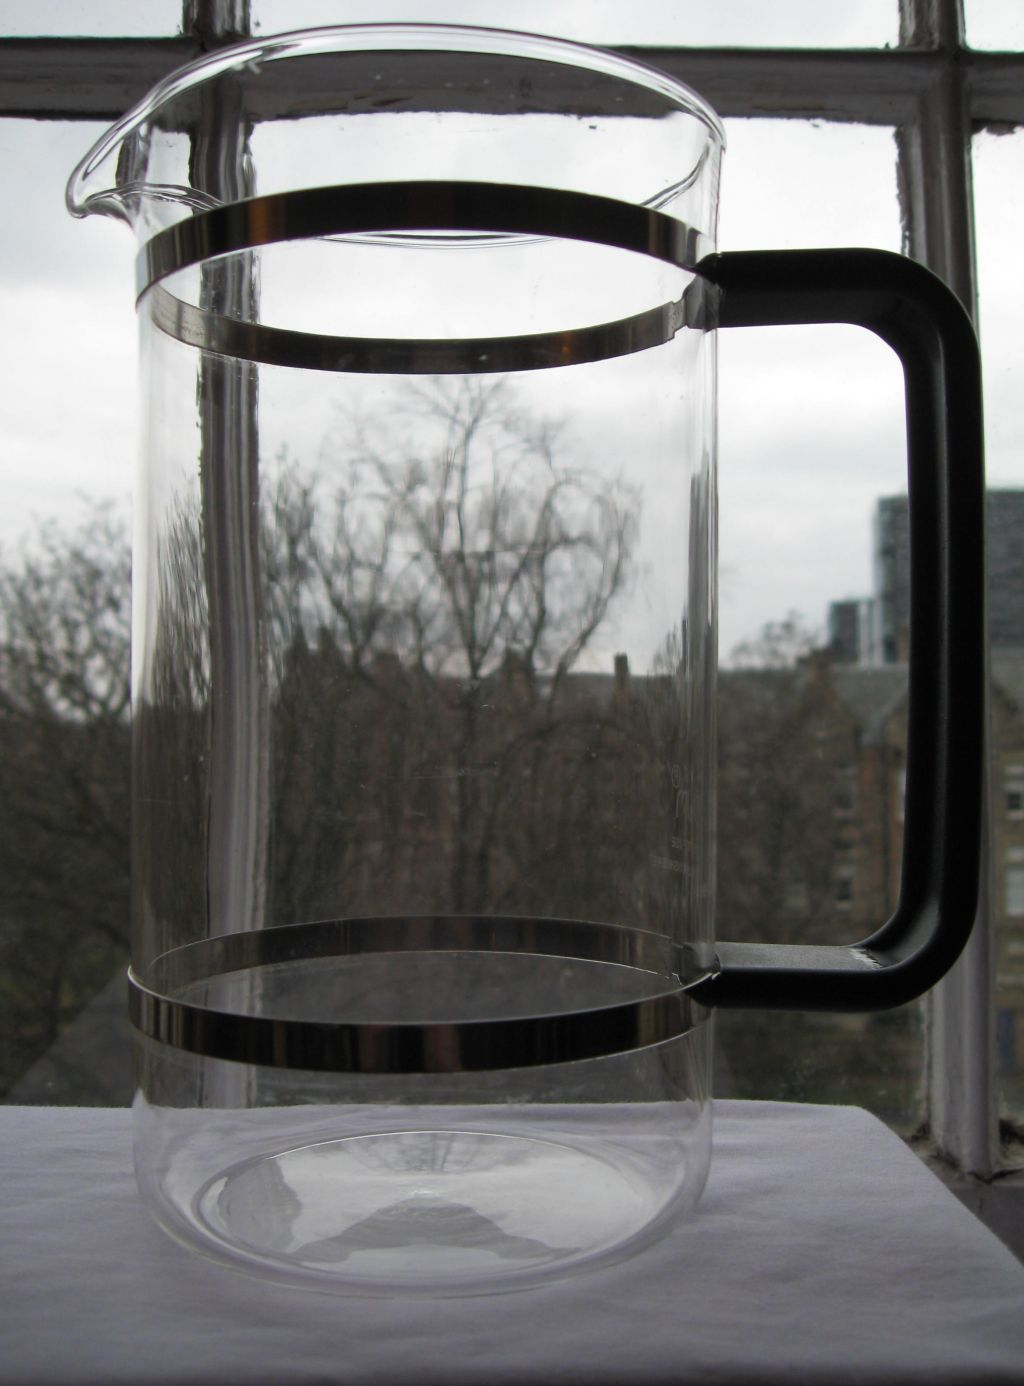 empty french press Using a french press for tea